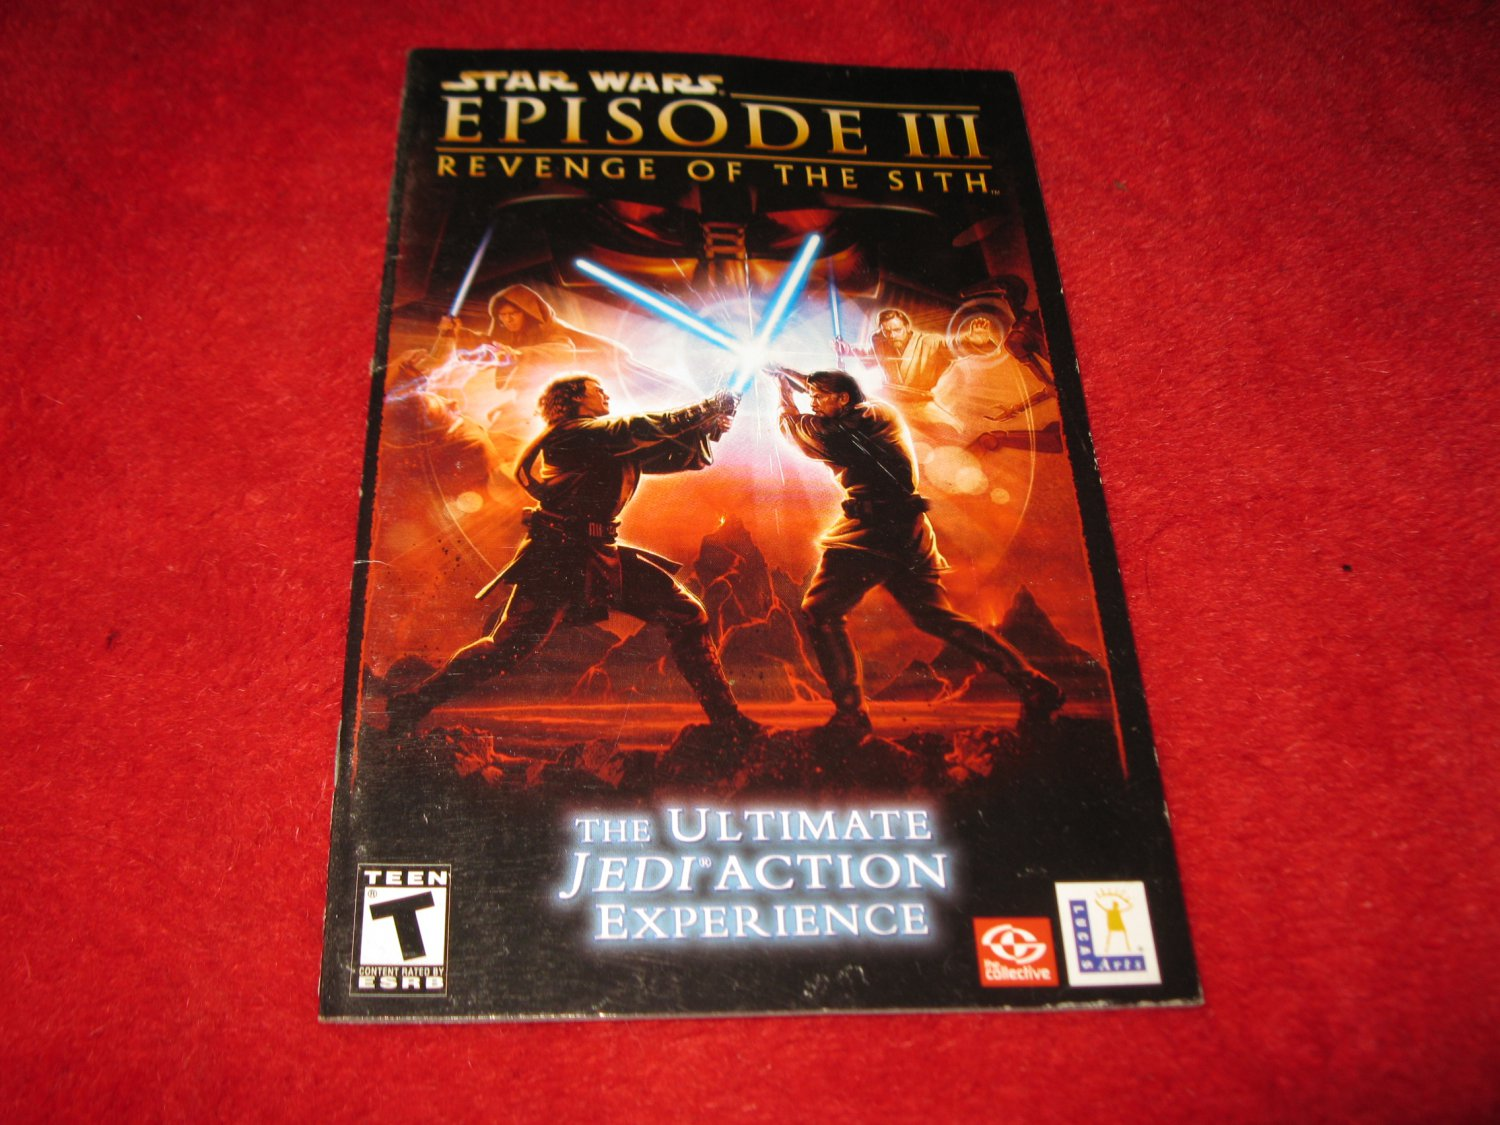 Star Wars Episode III Revenge of the Sith  : Playstation 2 PS2 Video Game Instruction Booklet